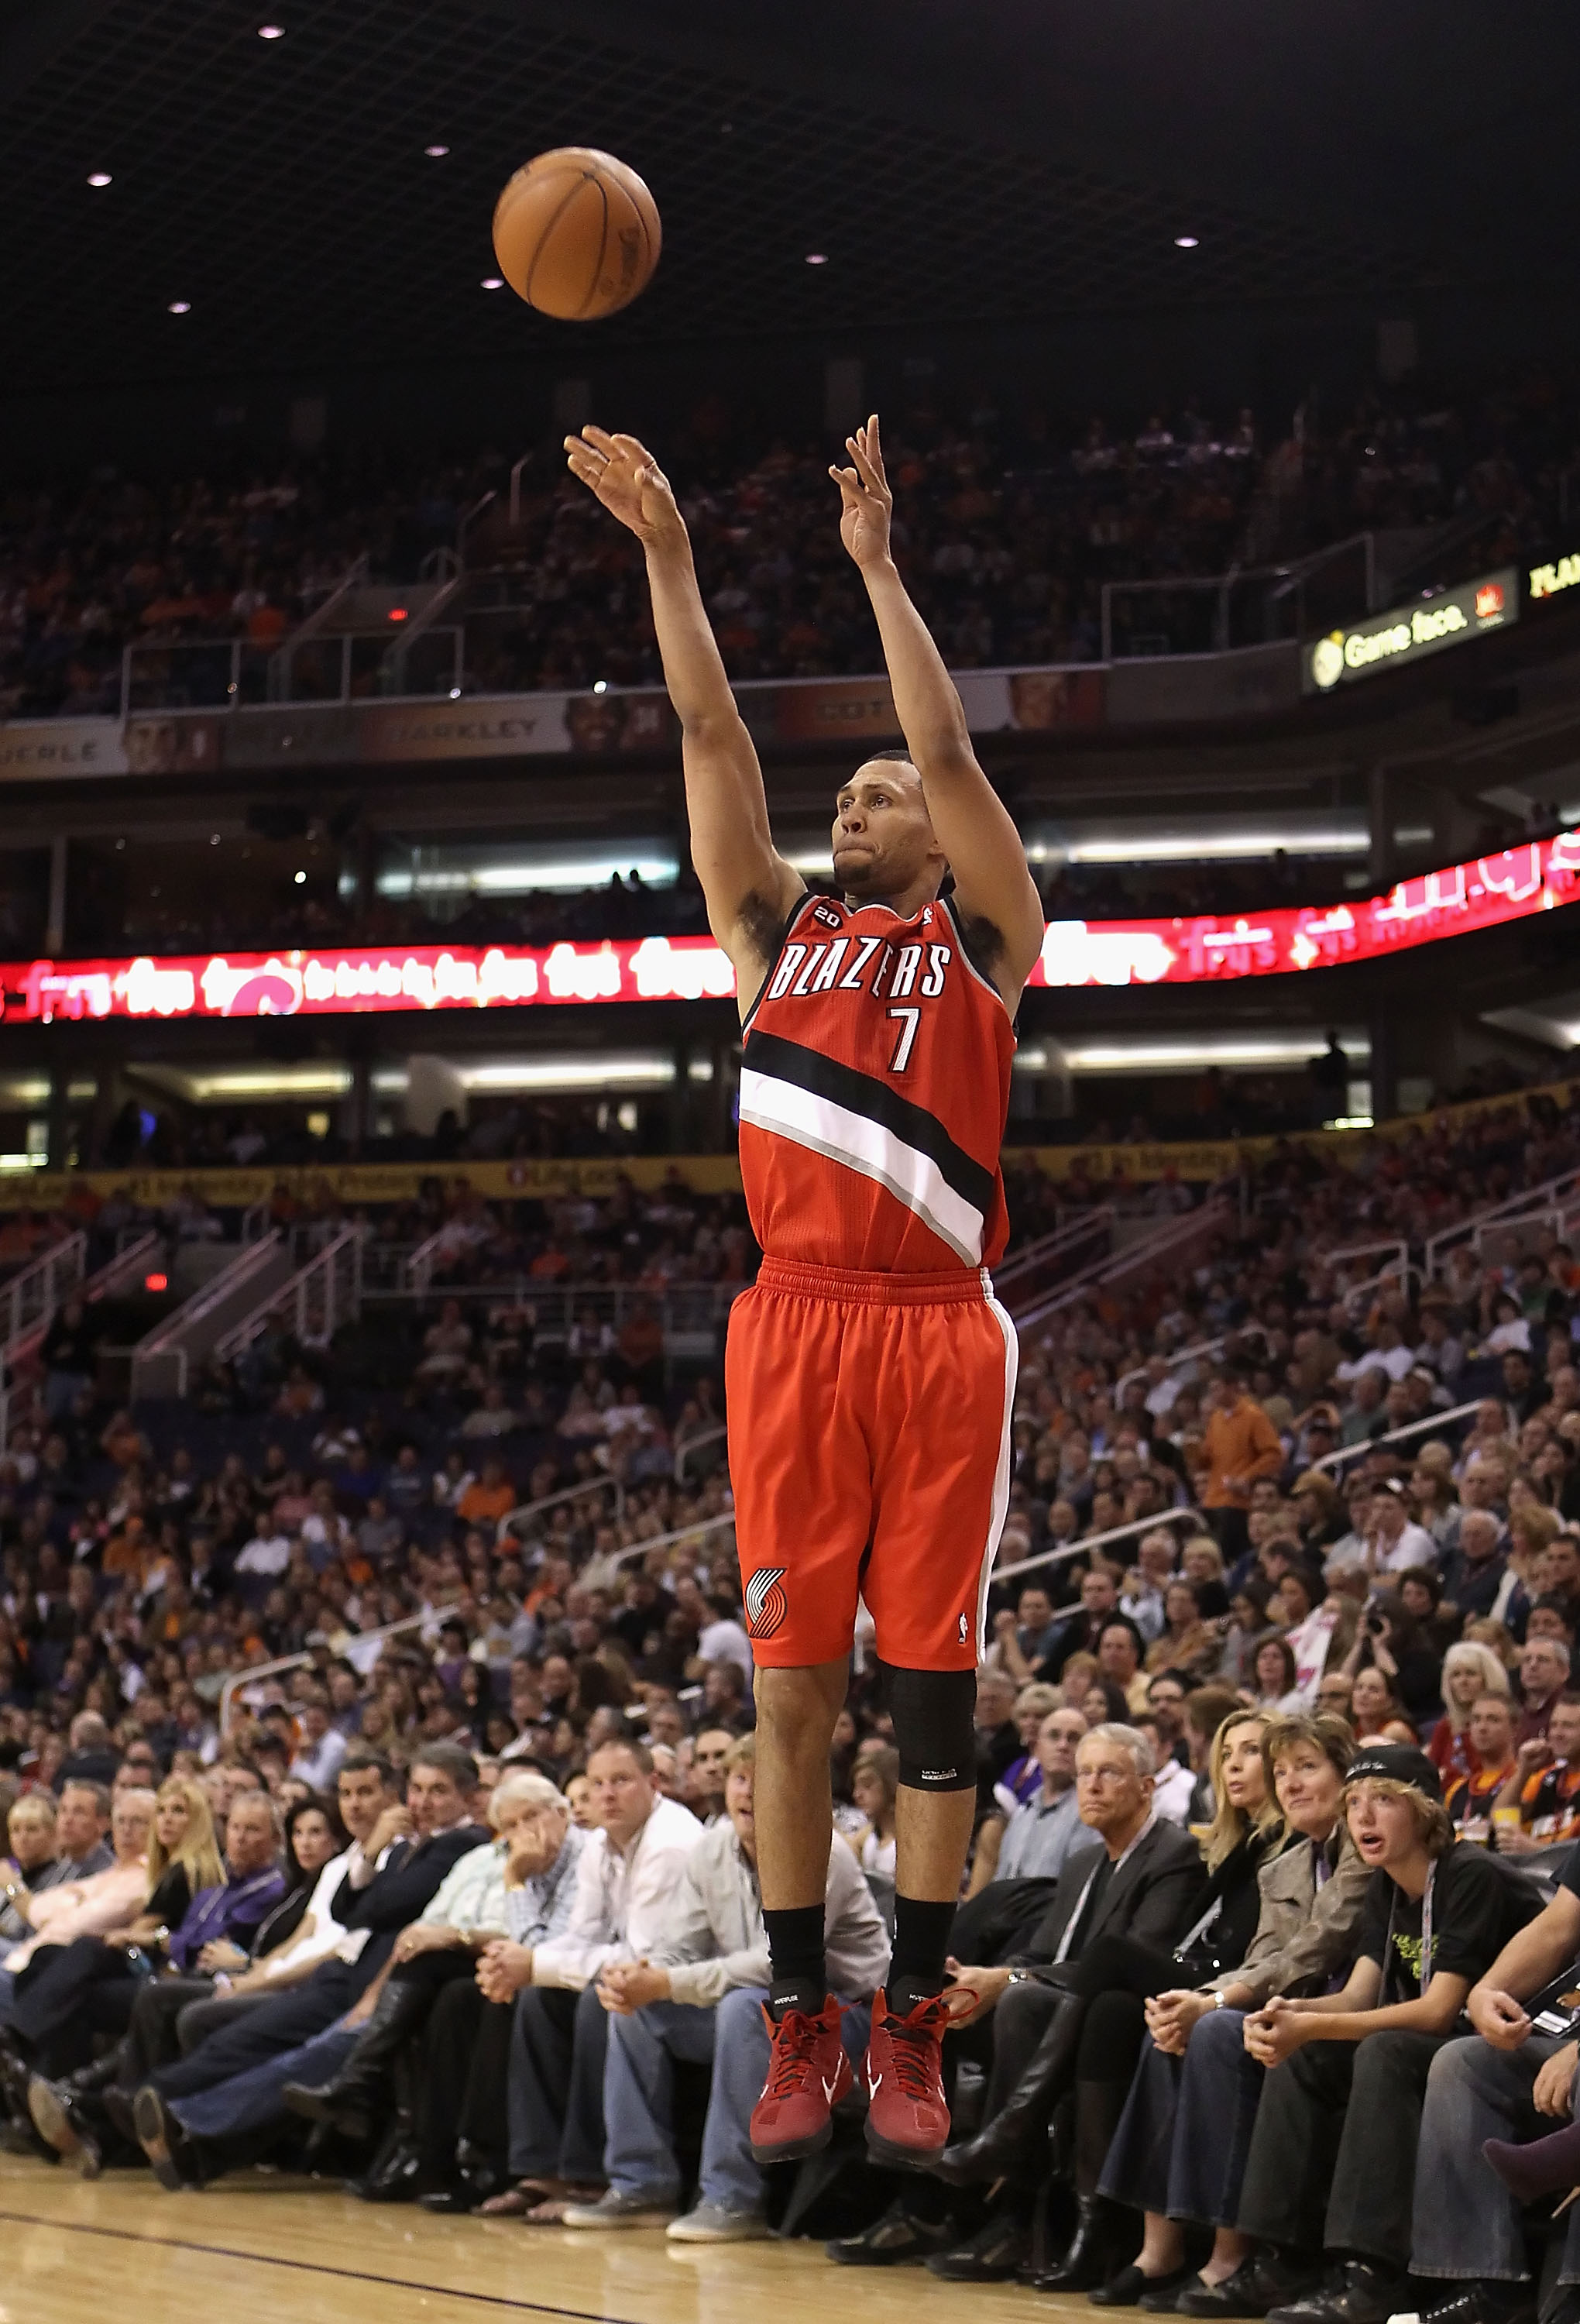 PHOENIX - DECEMBER 10:  Brandon Roy #7 of the Portland Trail Blazers puts up a three point shot during the NBA game against the Phoenix Suns at US Airways Center on December 10, 2010 in Phoenix, Arizona. The Trail Blazers defeated the Suns 101-94. NOTE TO